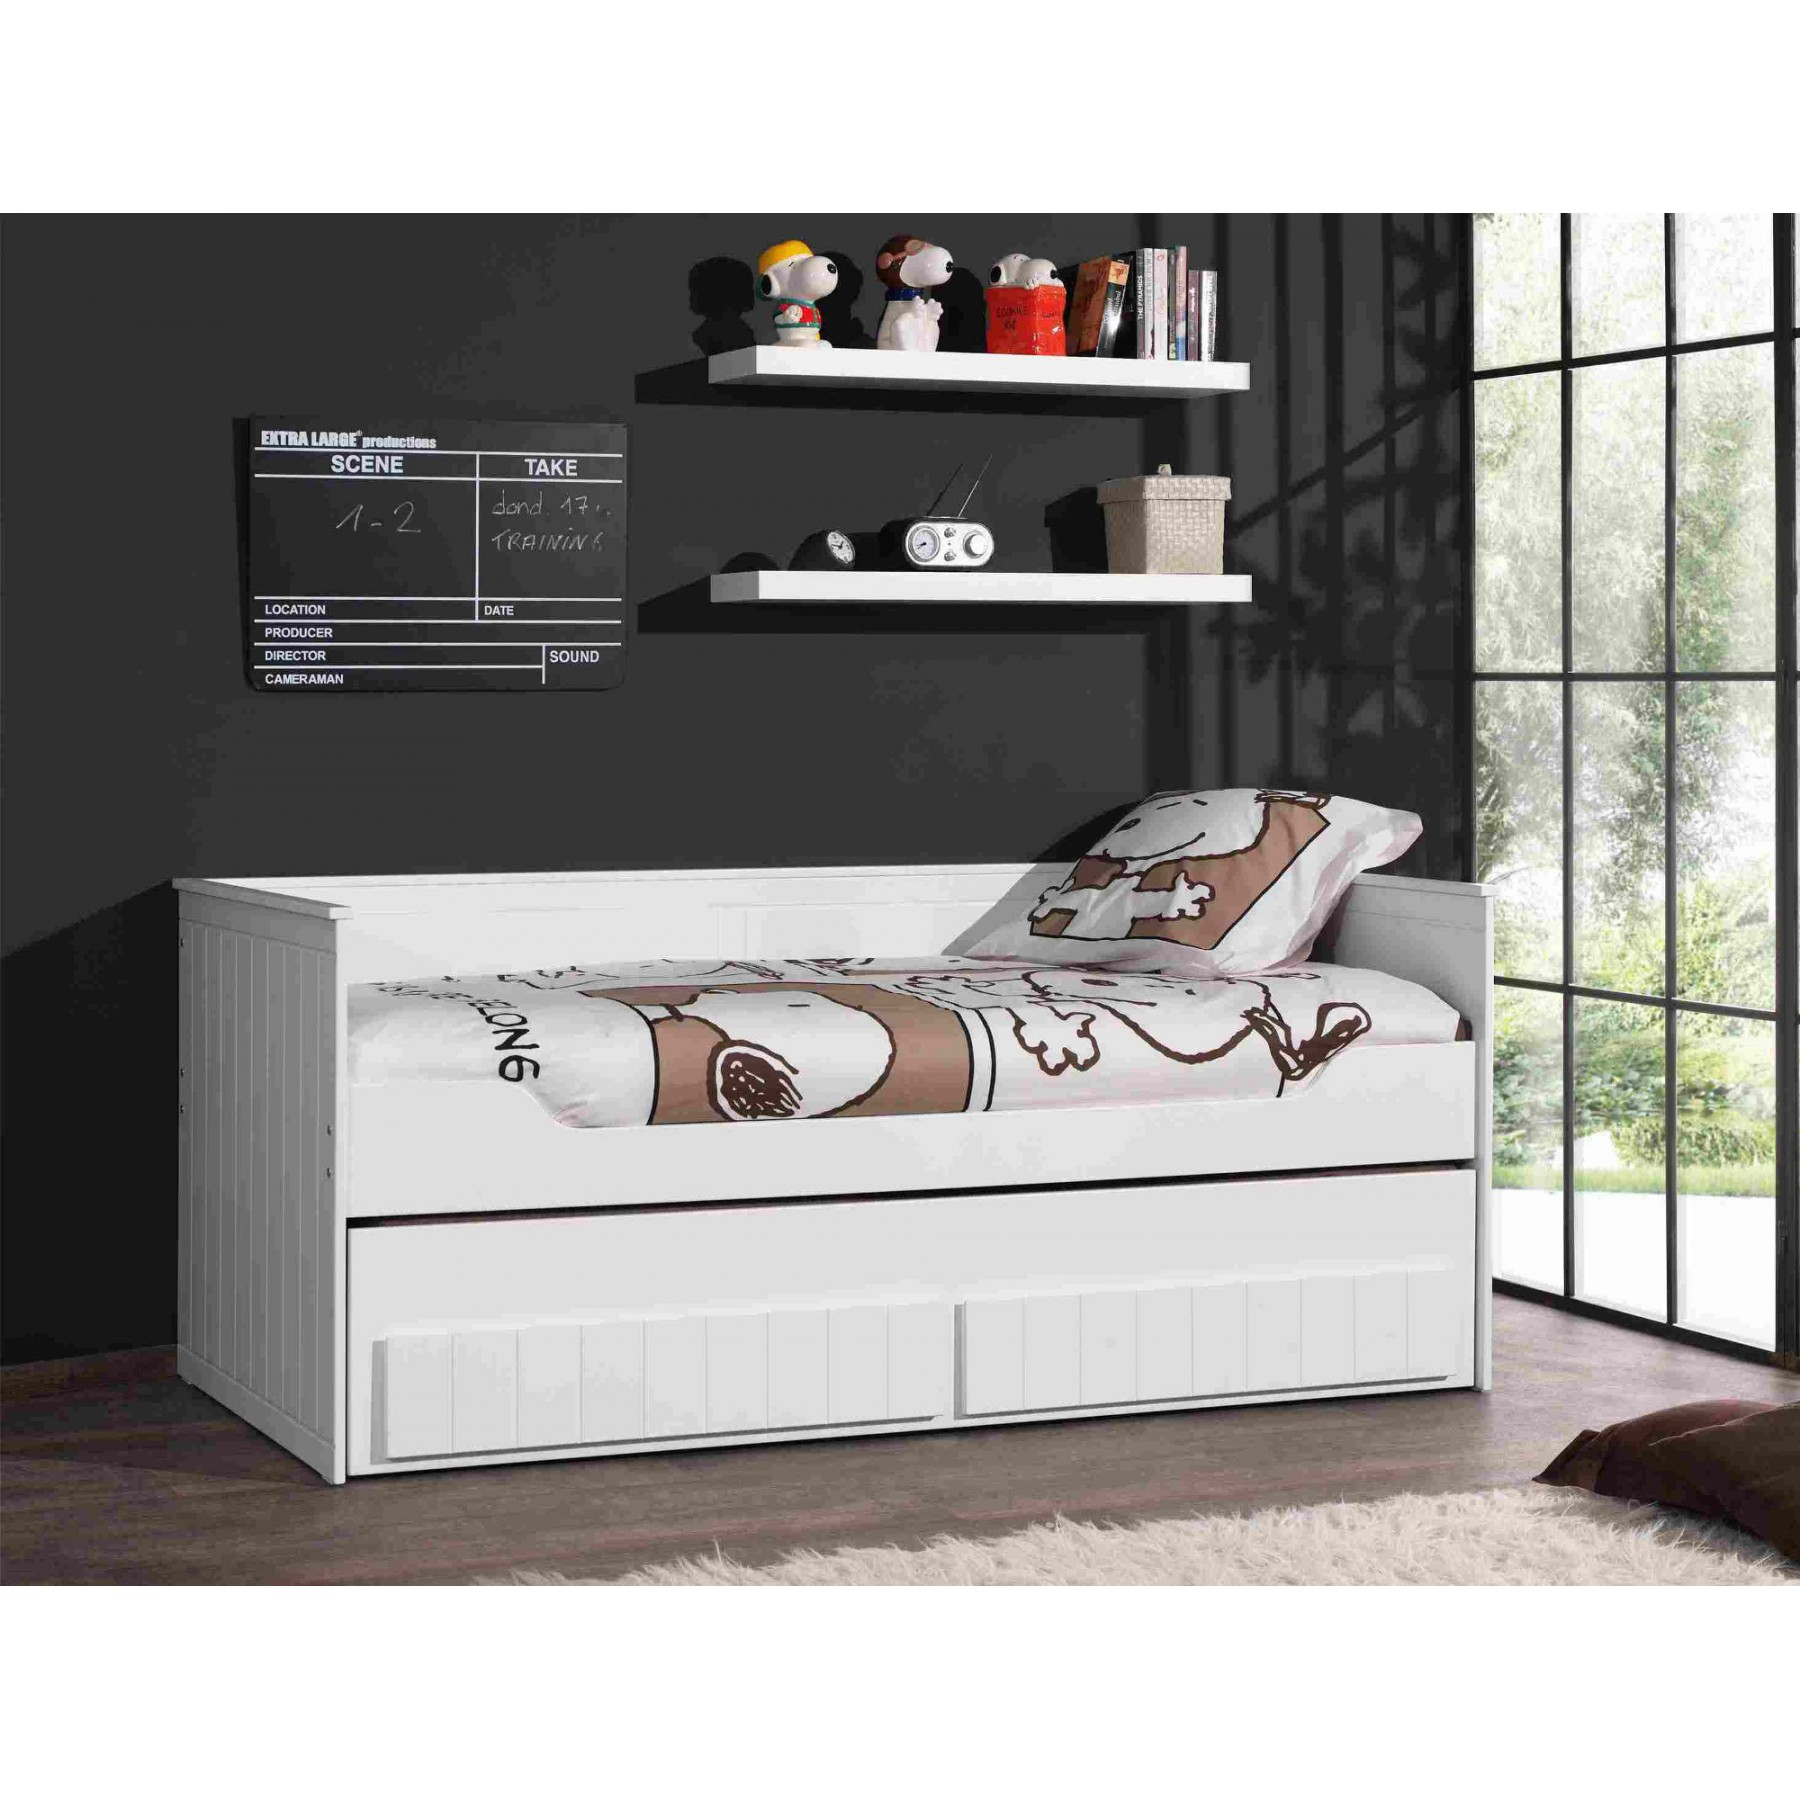 lit gigogne laqu blanc en mdf et pin massif avec tiroirs. Black Bedroom Furniture Sets. Home Design Ideas